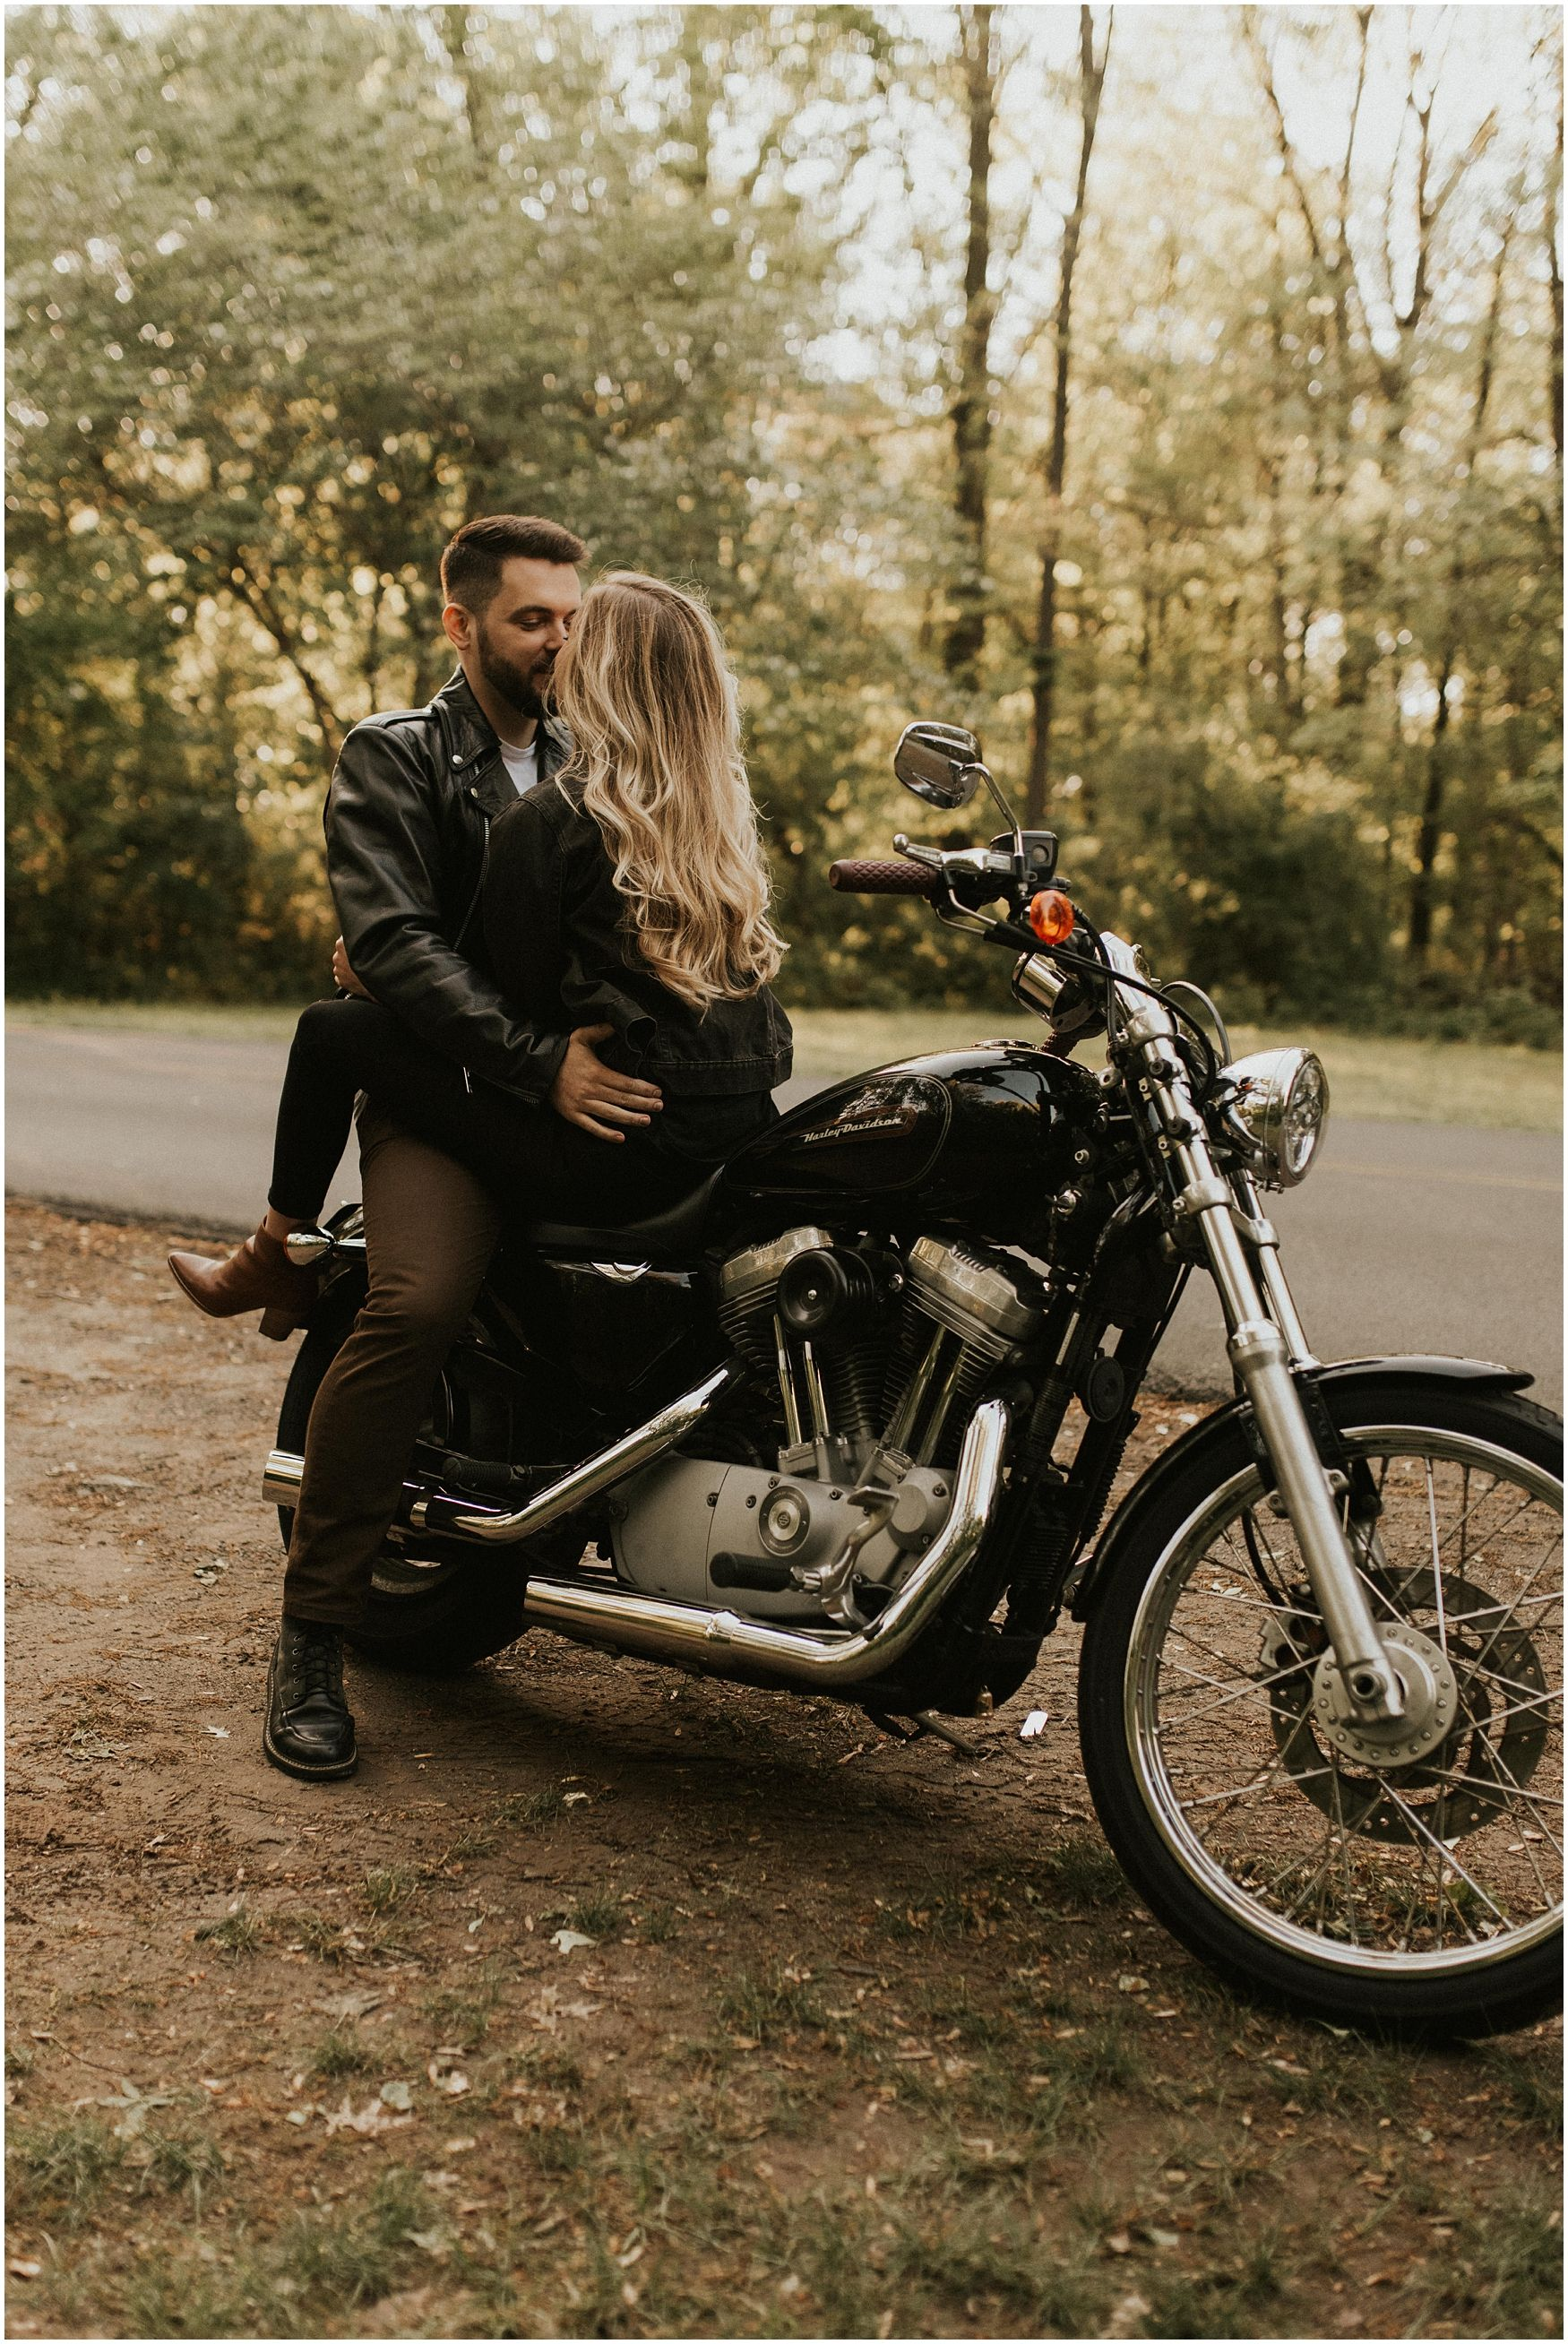 Edgy Motorcycle Couples Session Harley Davidson Photos Motorcycle Couple Harley Couple